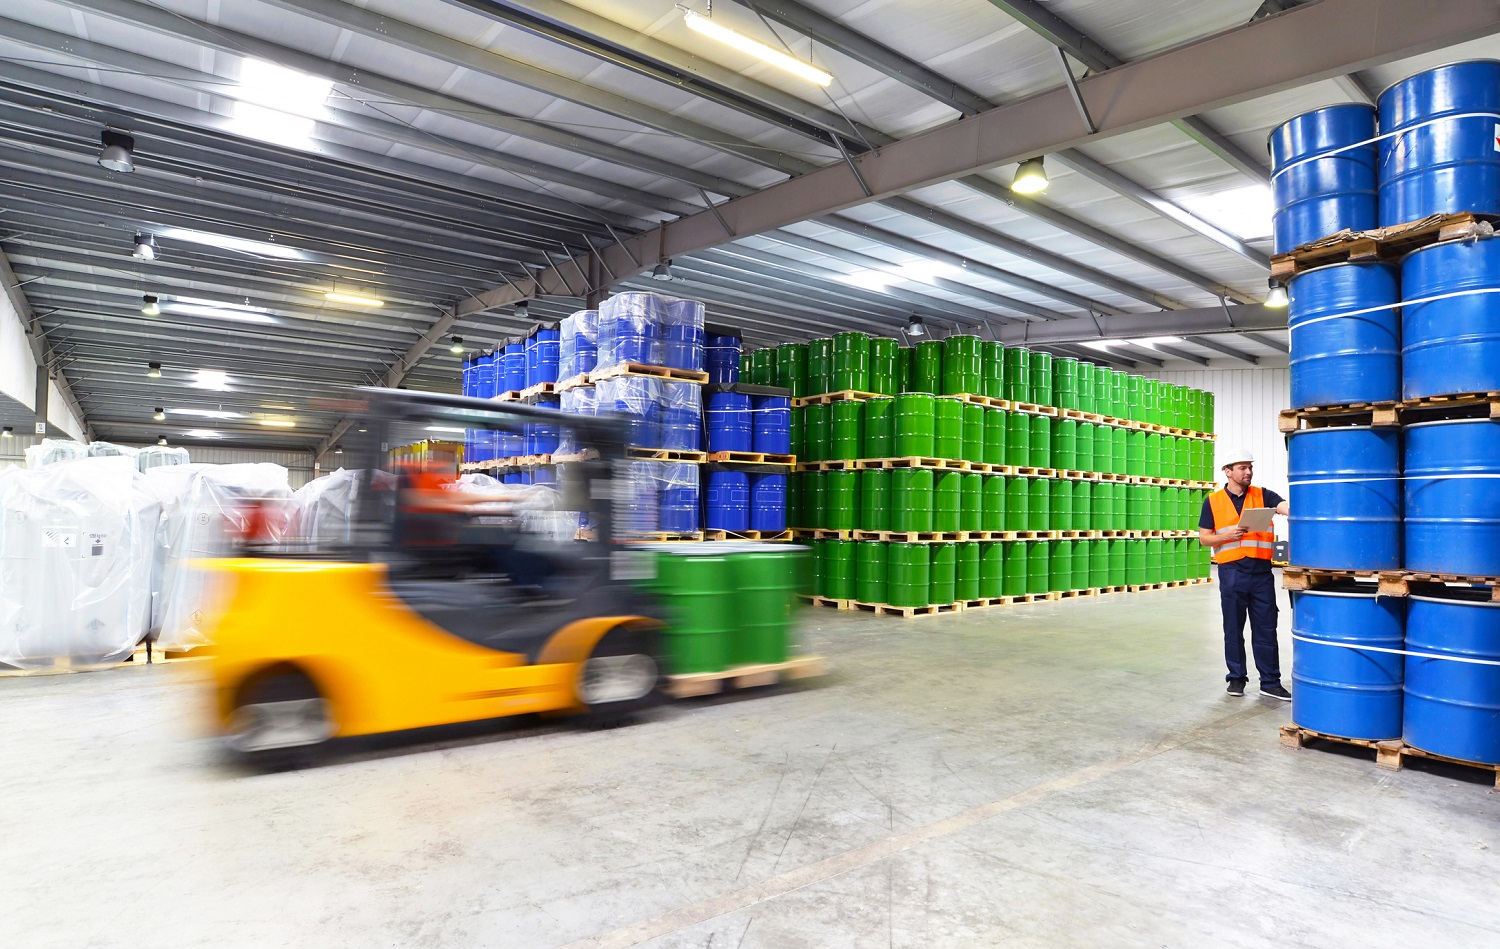 forklift and two workers in orange vests in a warehouse filled with blue and green drums stacked to the ceiling